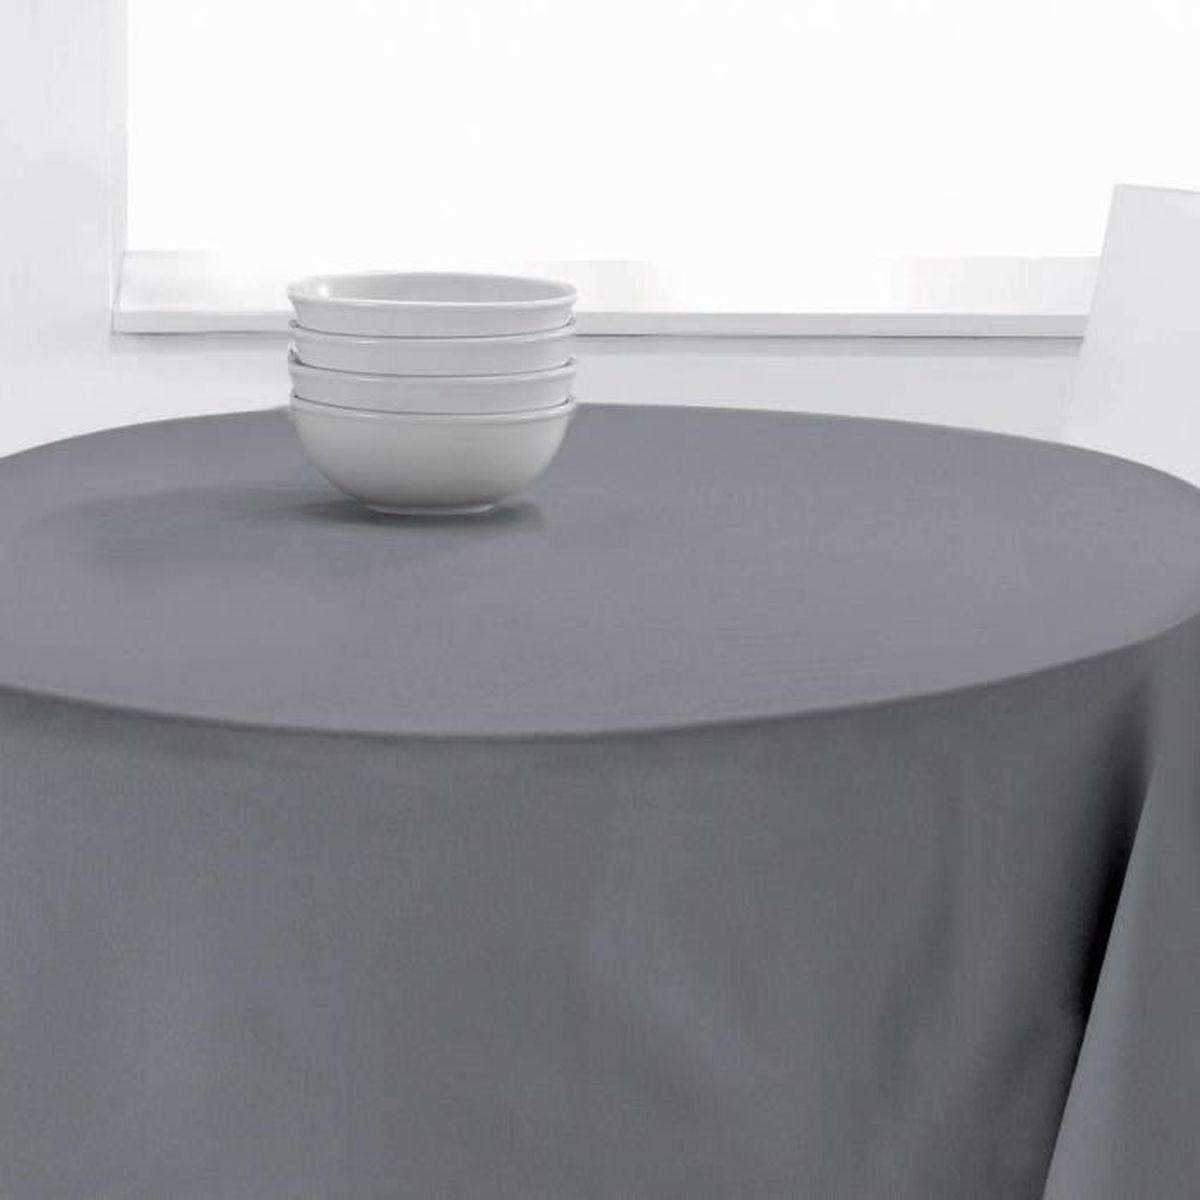 nappe ronde uni pes 140 cm les ateliers du linge diam tre 140 gris achat vente nappe de. Black Bedroom Furniture Sets. Home Design Ideas